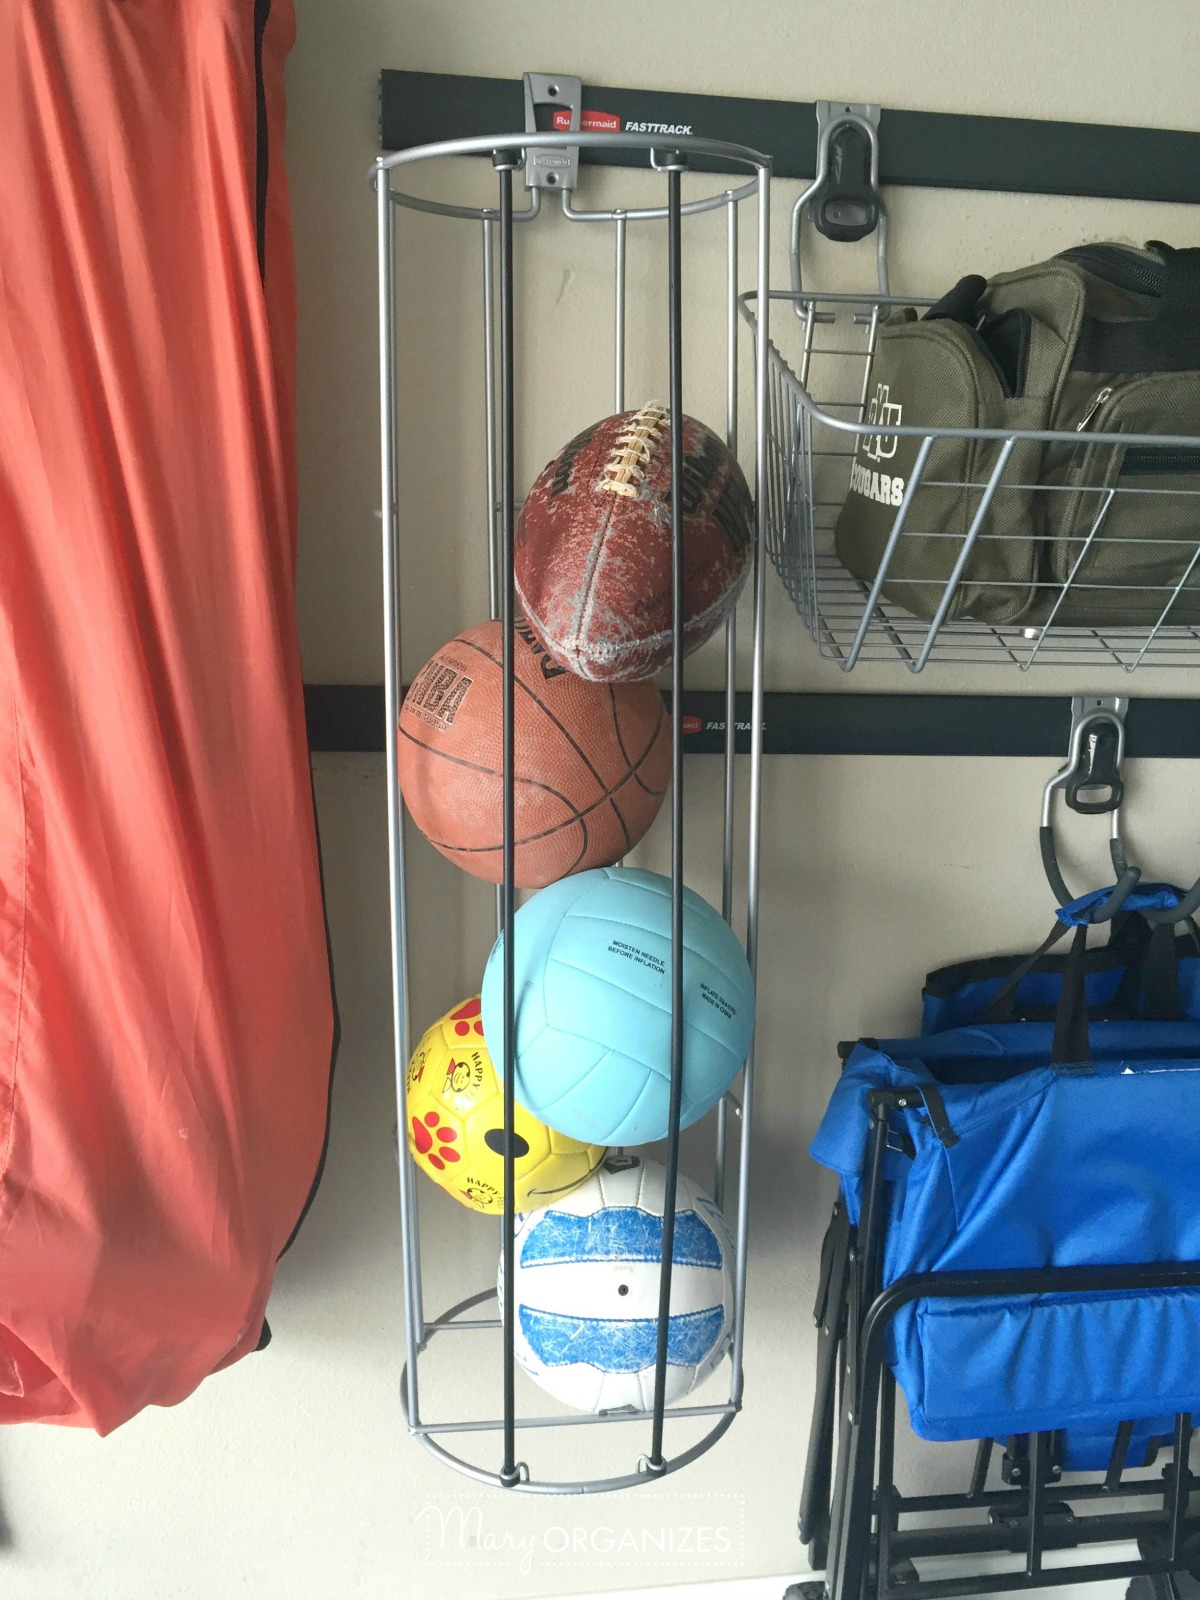 Garage Organizing - How to hang bikes scooters ripsticks balls and more -g8